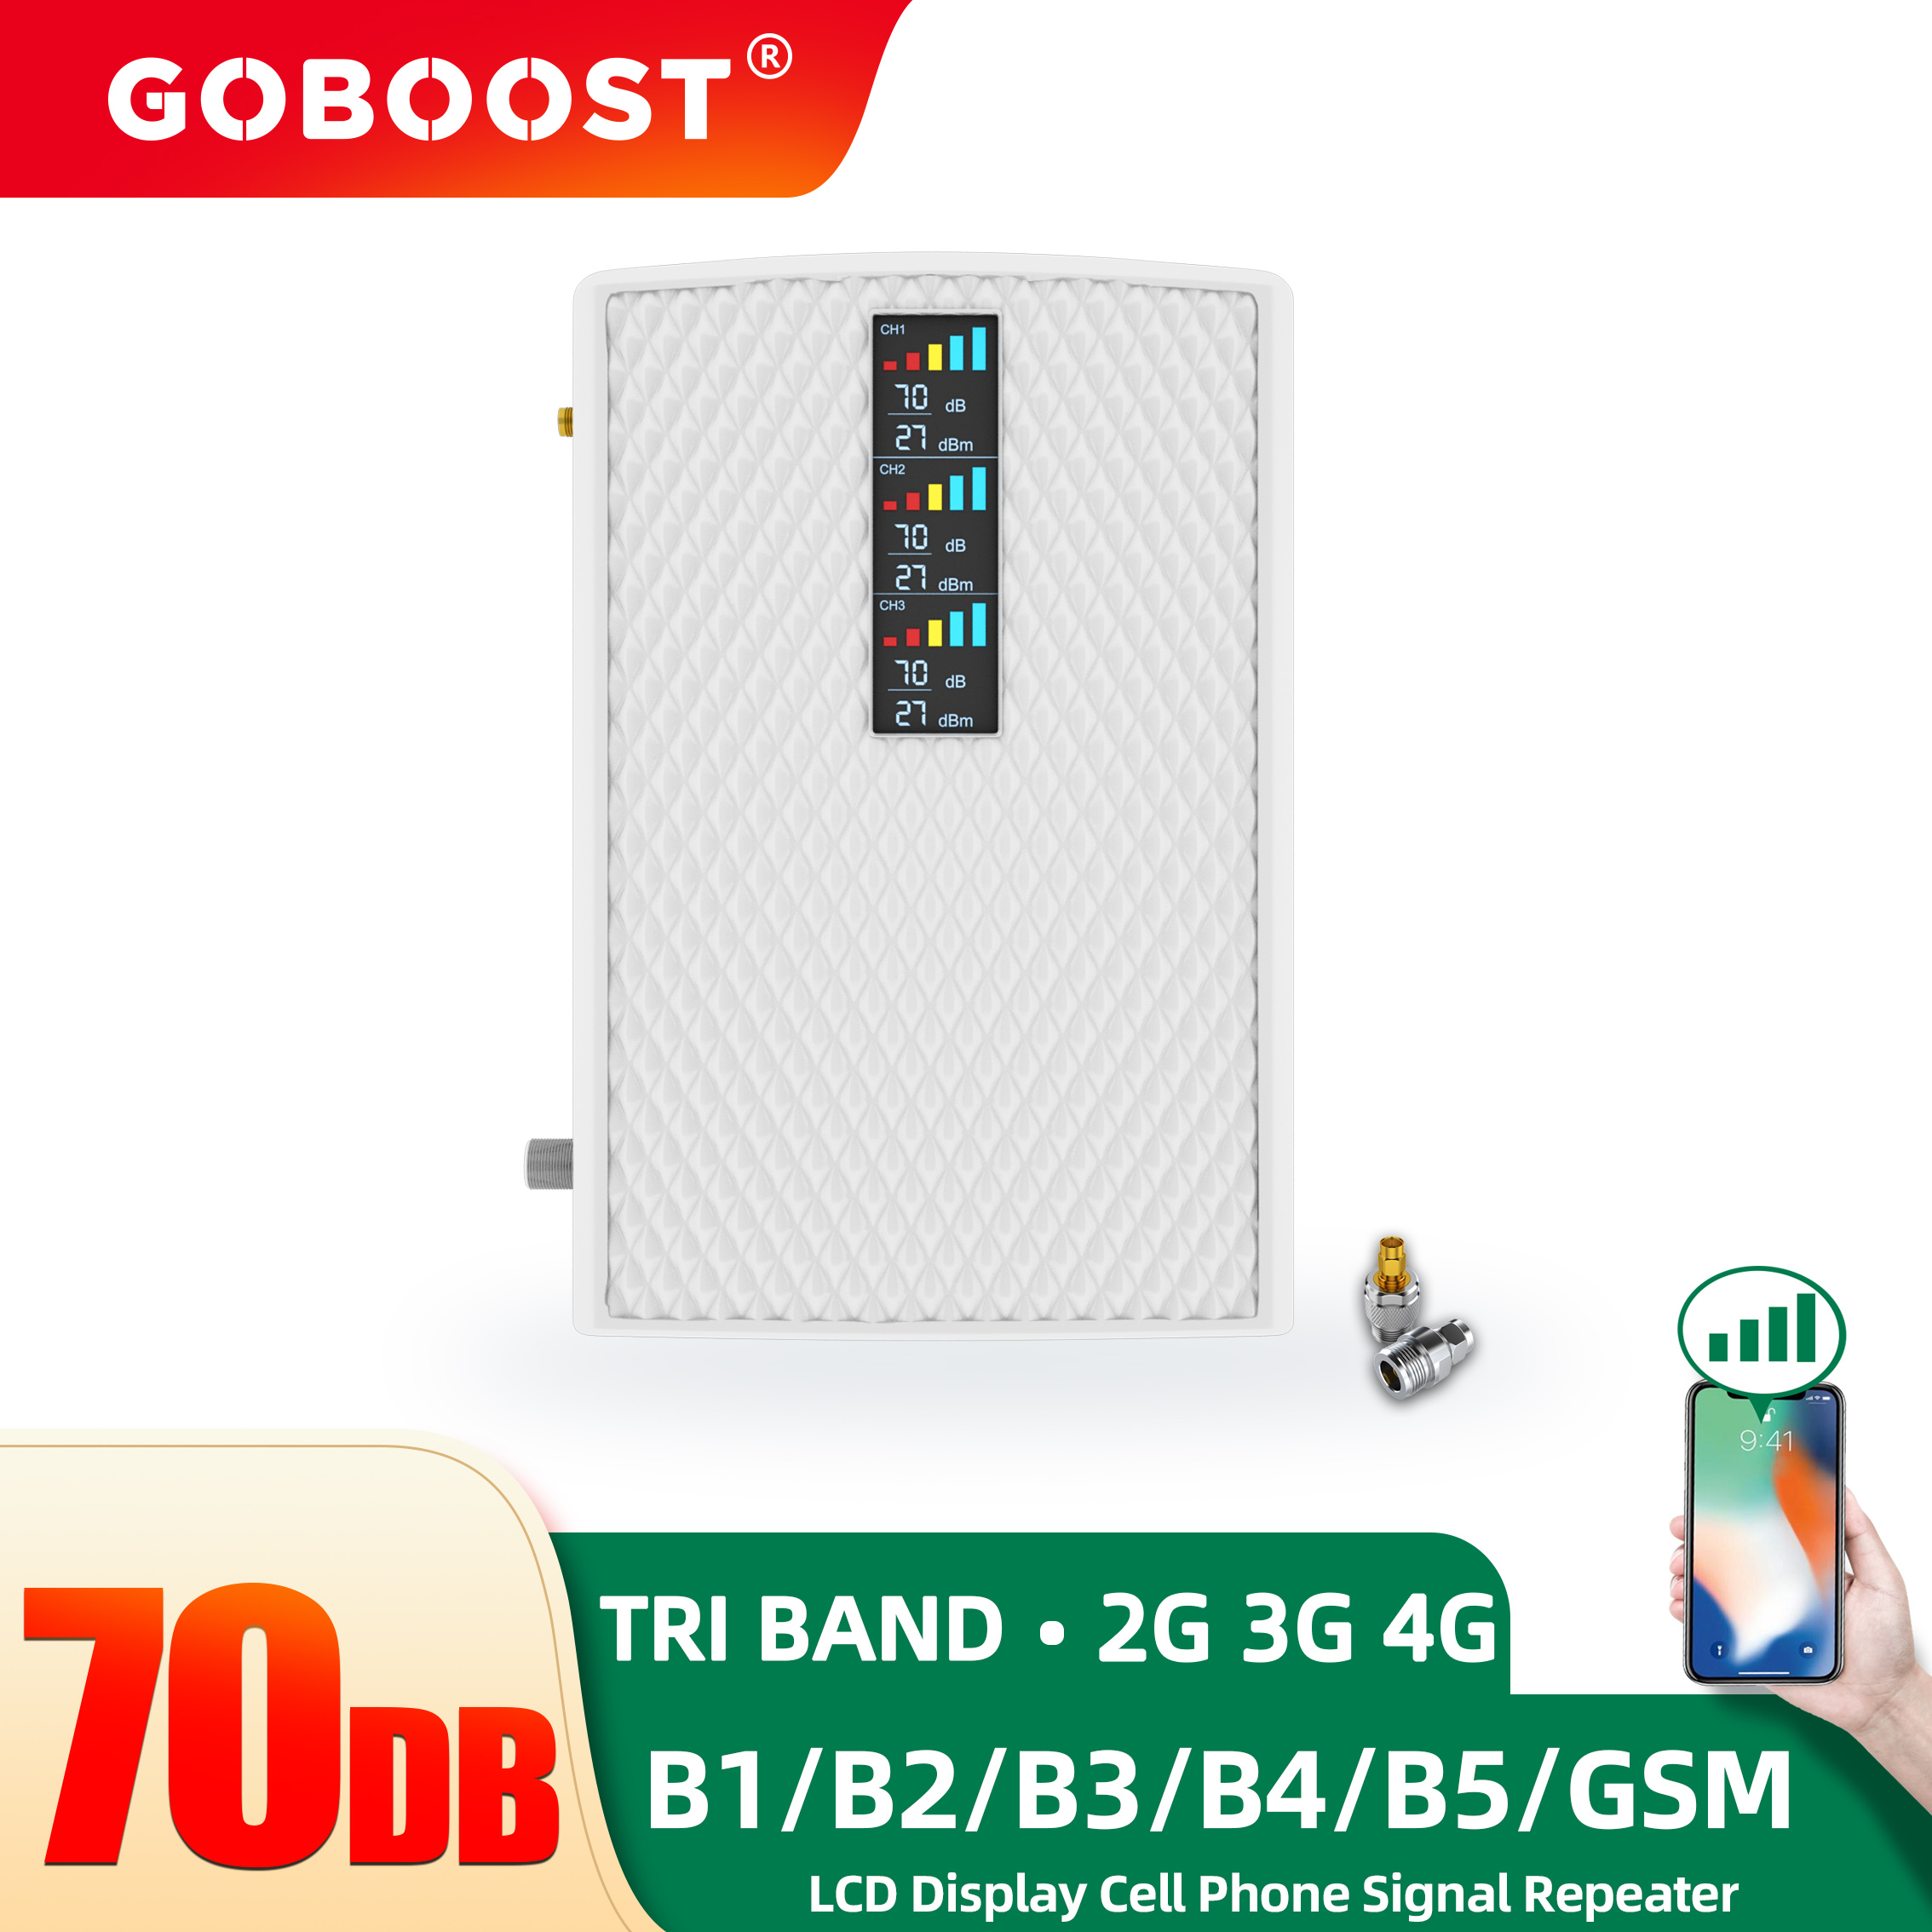 GOBOOST 3G 4G Cellular Repeater Tri Band 850 900 1800 2100 1900 1700 Mhz LTE Signal Amplifier Cell Phone Booster GSM PCS Display